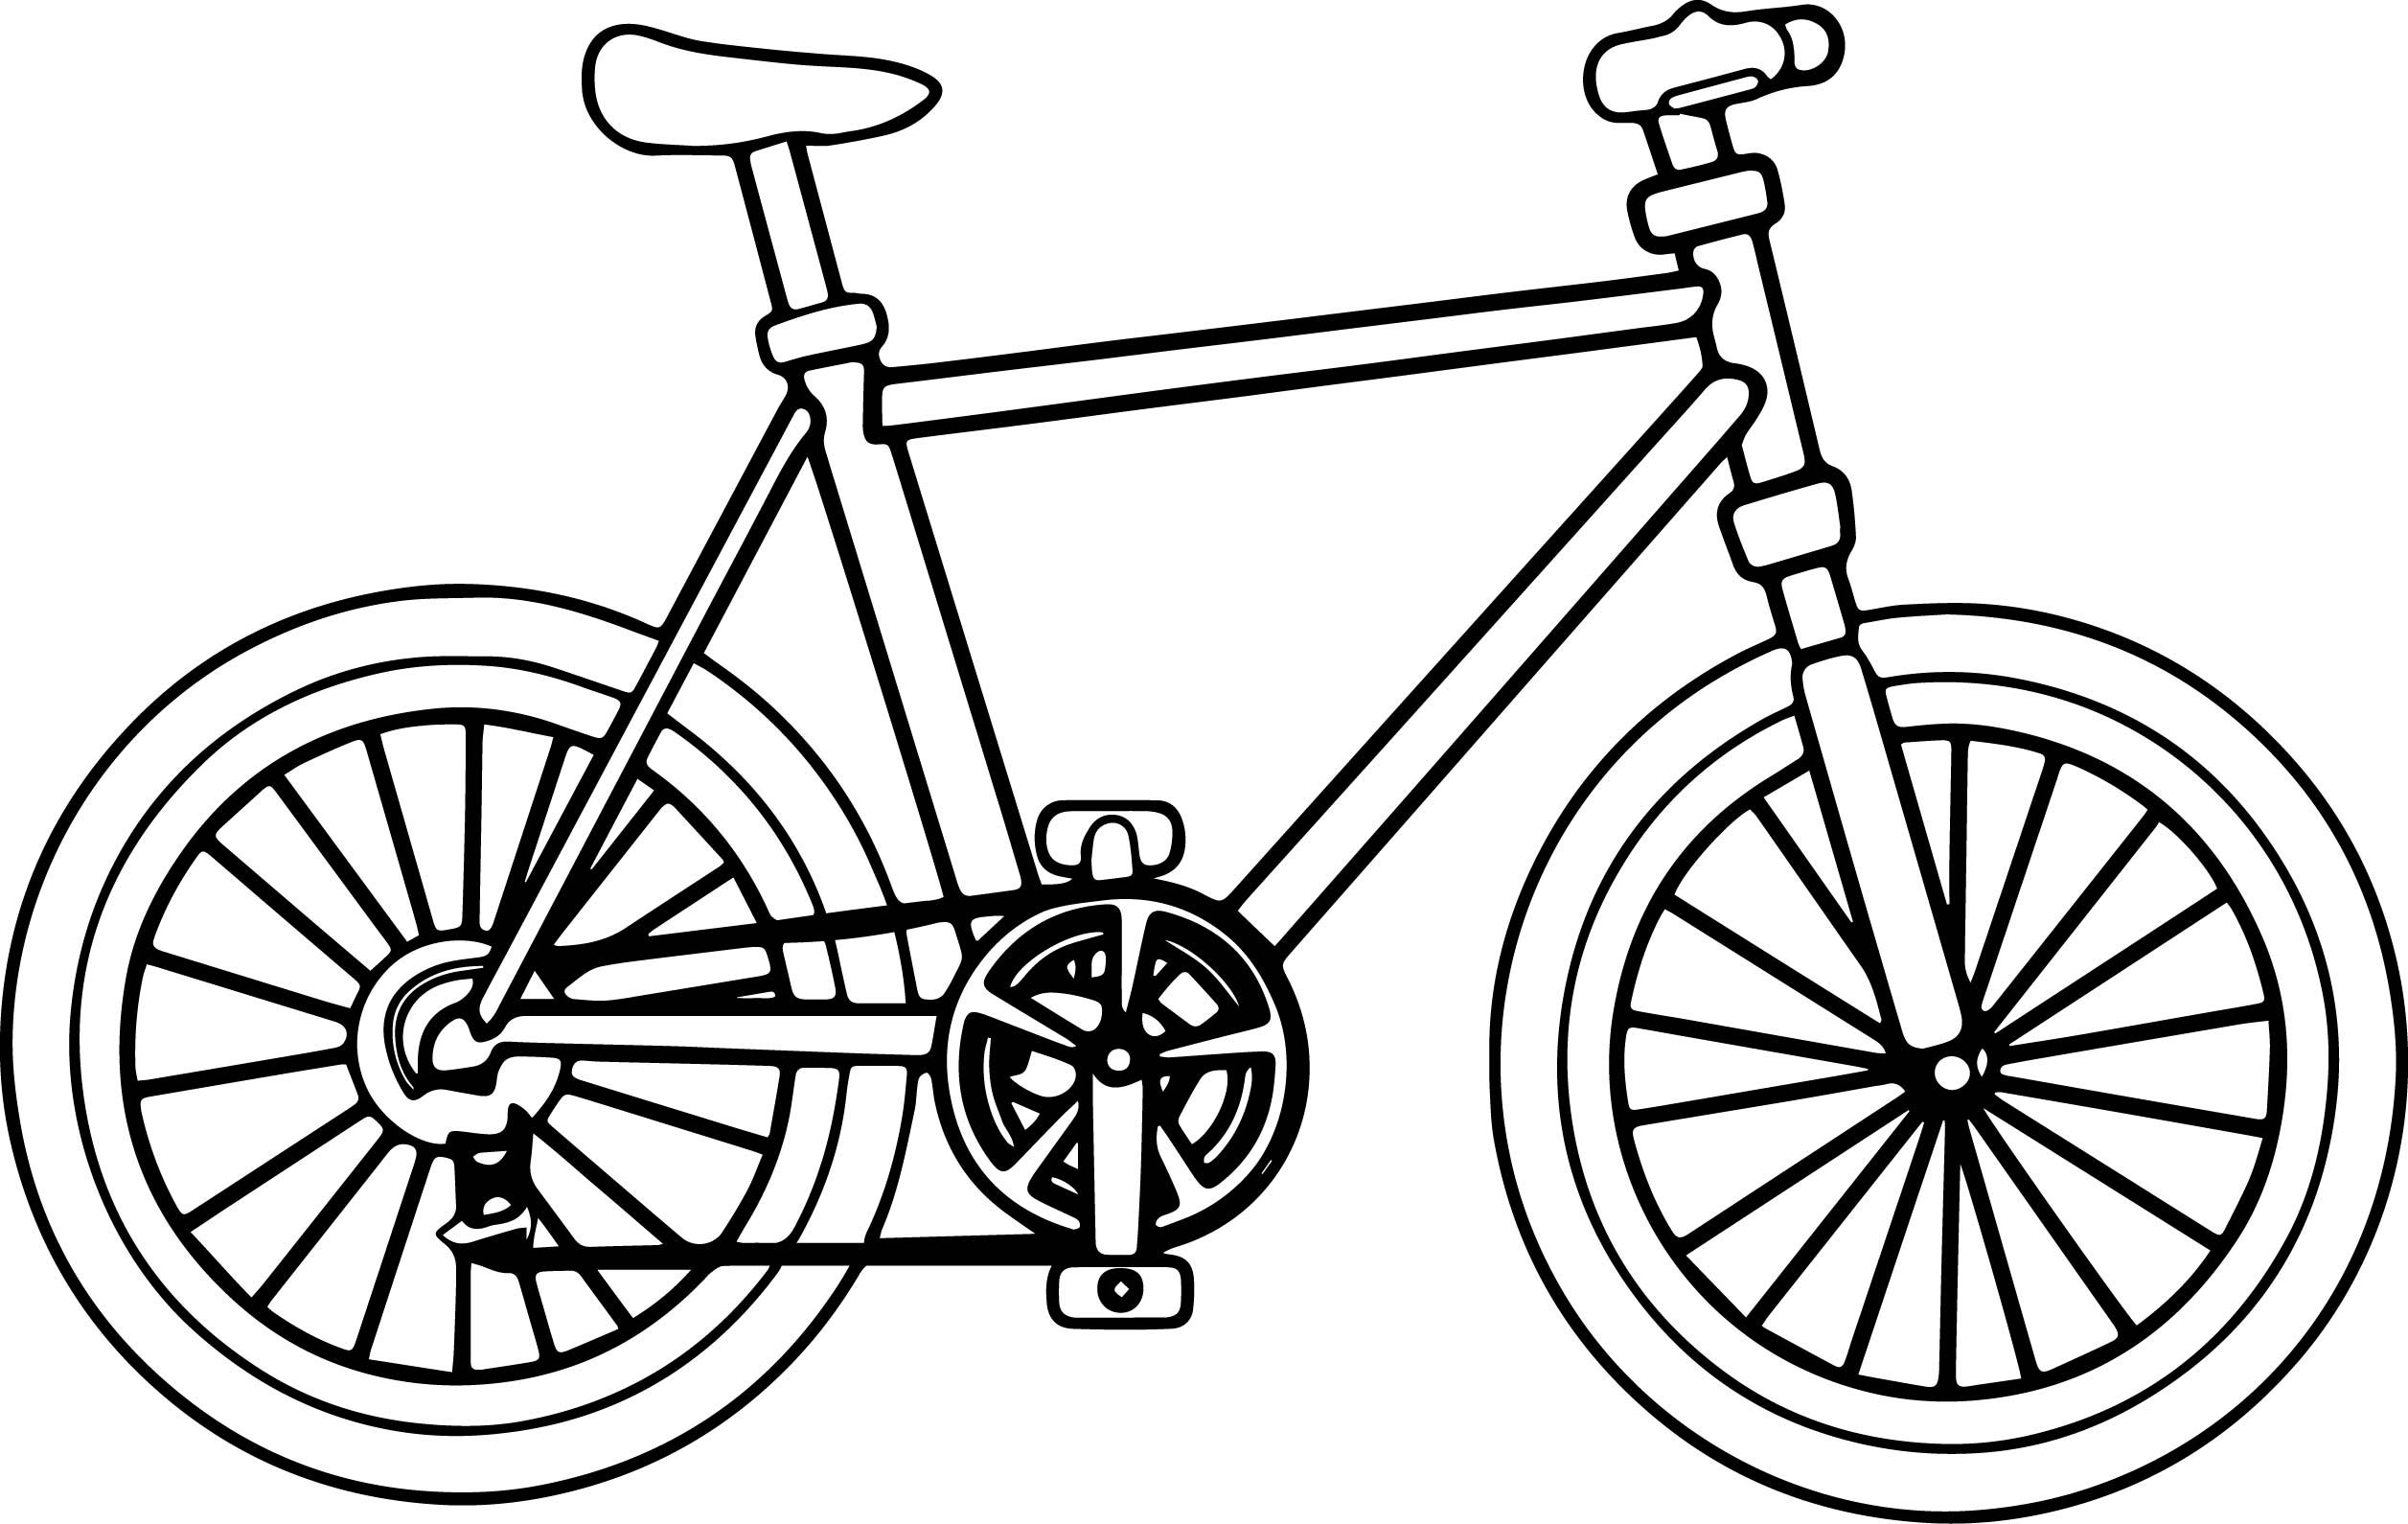 Awesome Big Bike Biycle Coloring Page